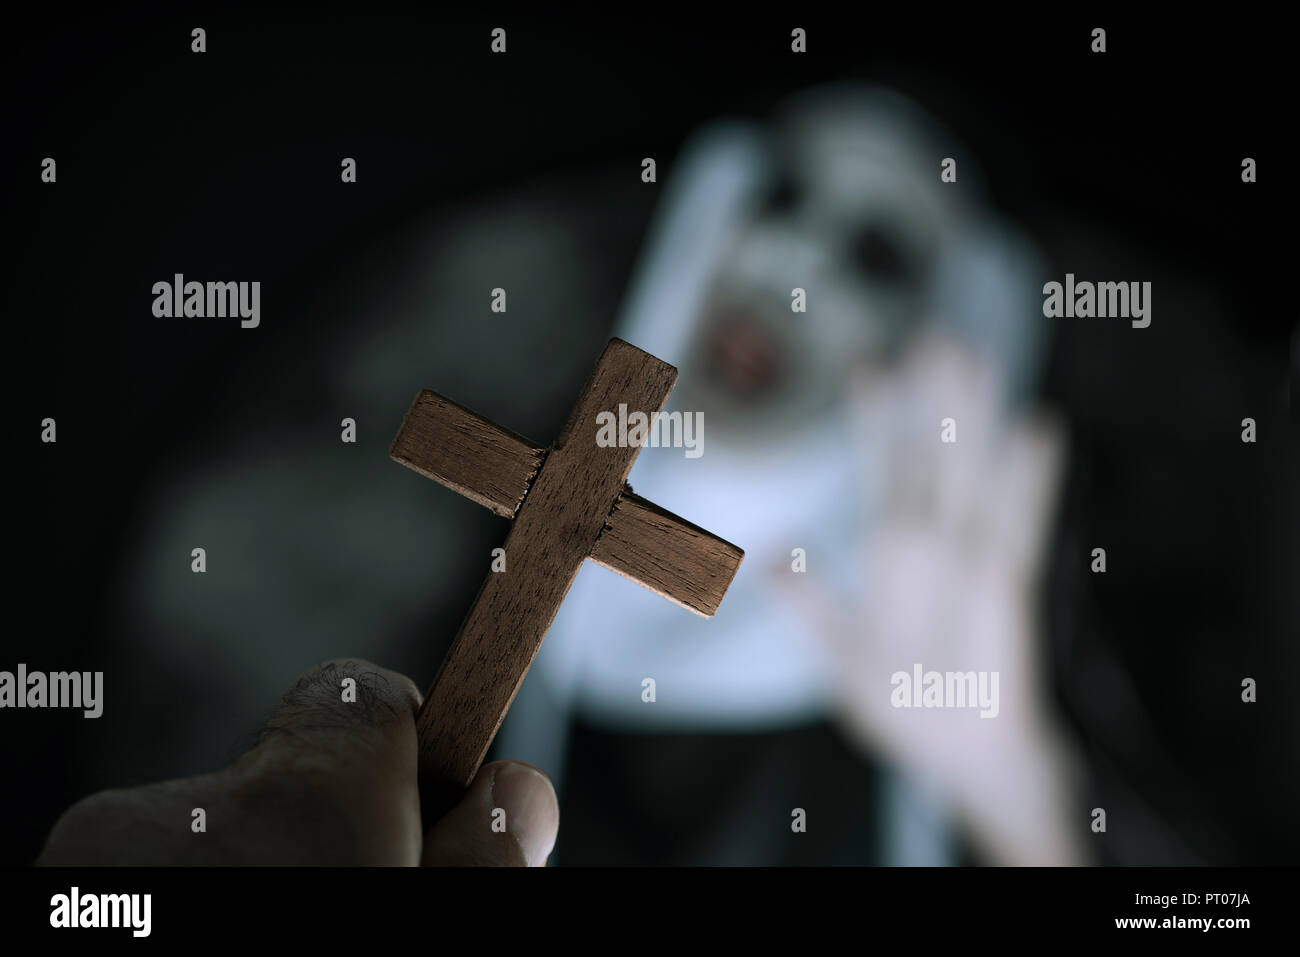 closeup a cross in the hand of a man and a frightening evil nun, wearing a typical black and white habit, screaming - Stock Image